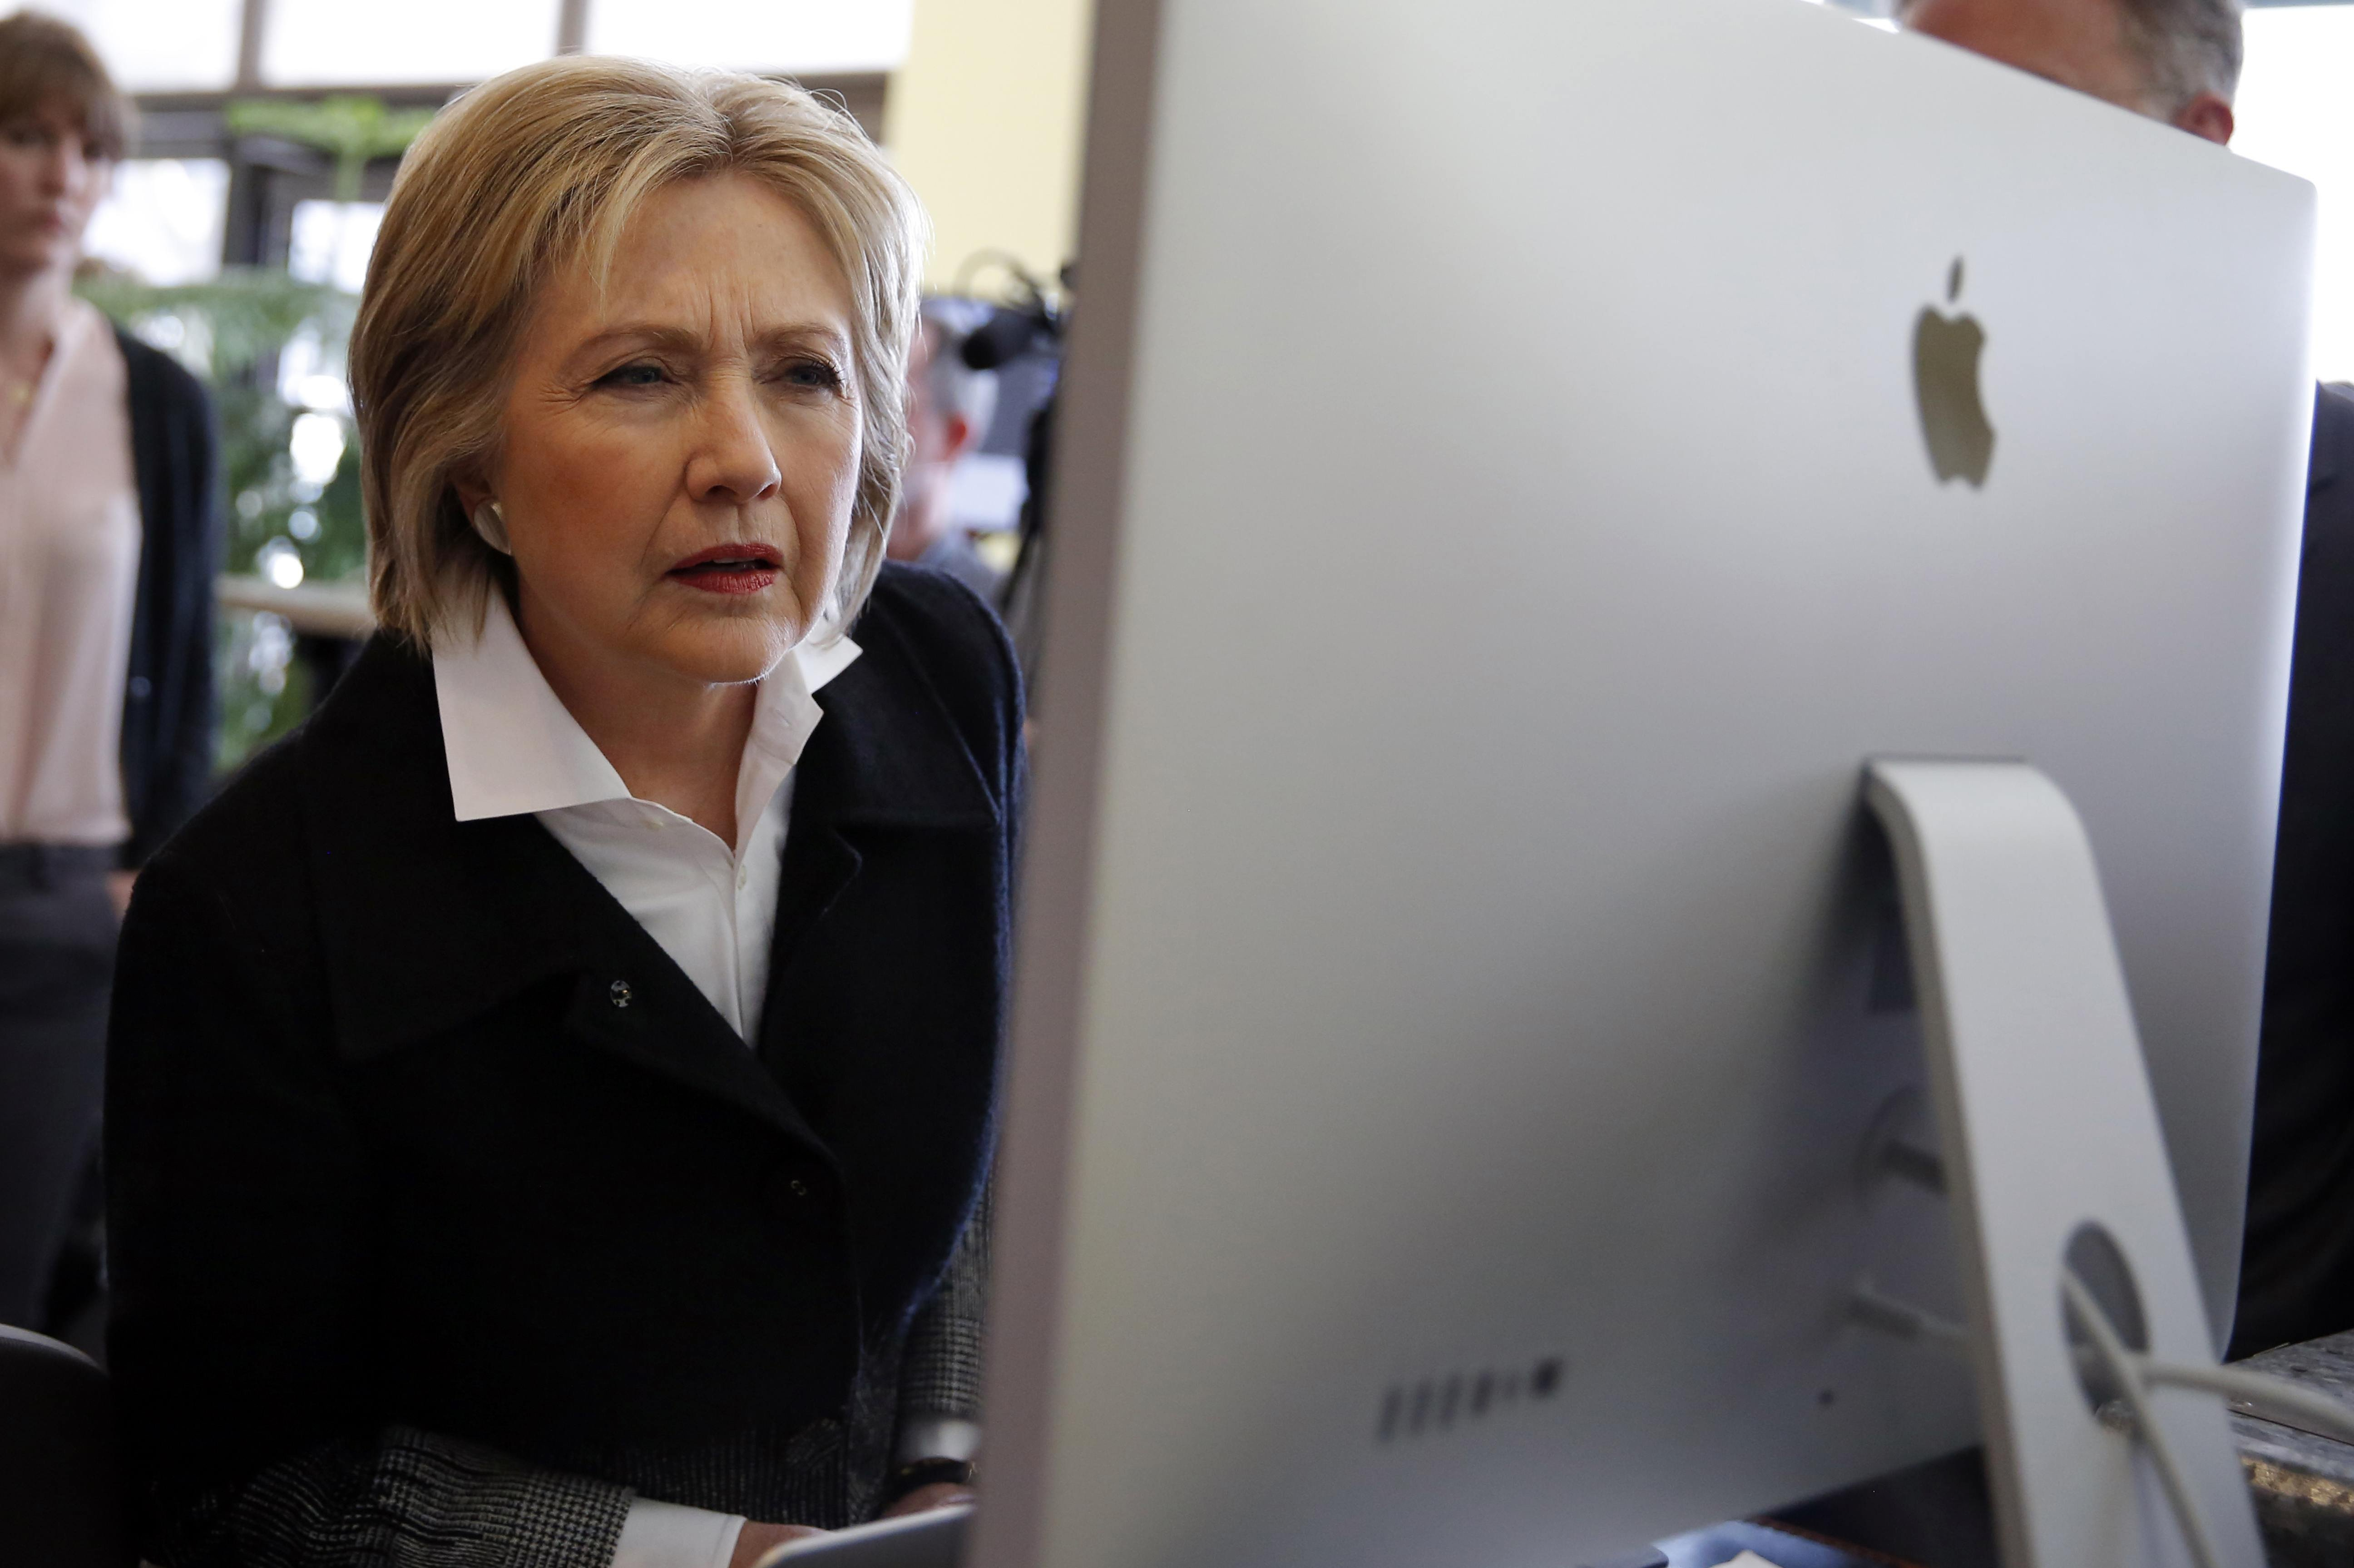 U.S. Democratic presidential candidate Hillary Clinton looks at a computer screen (File)